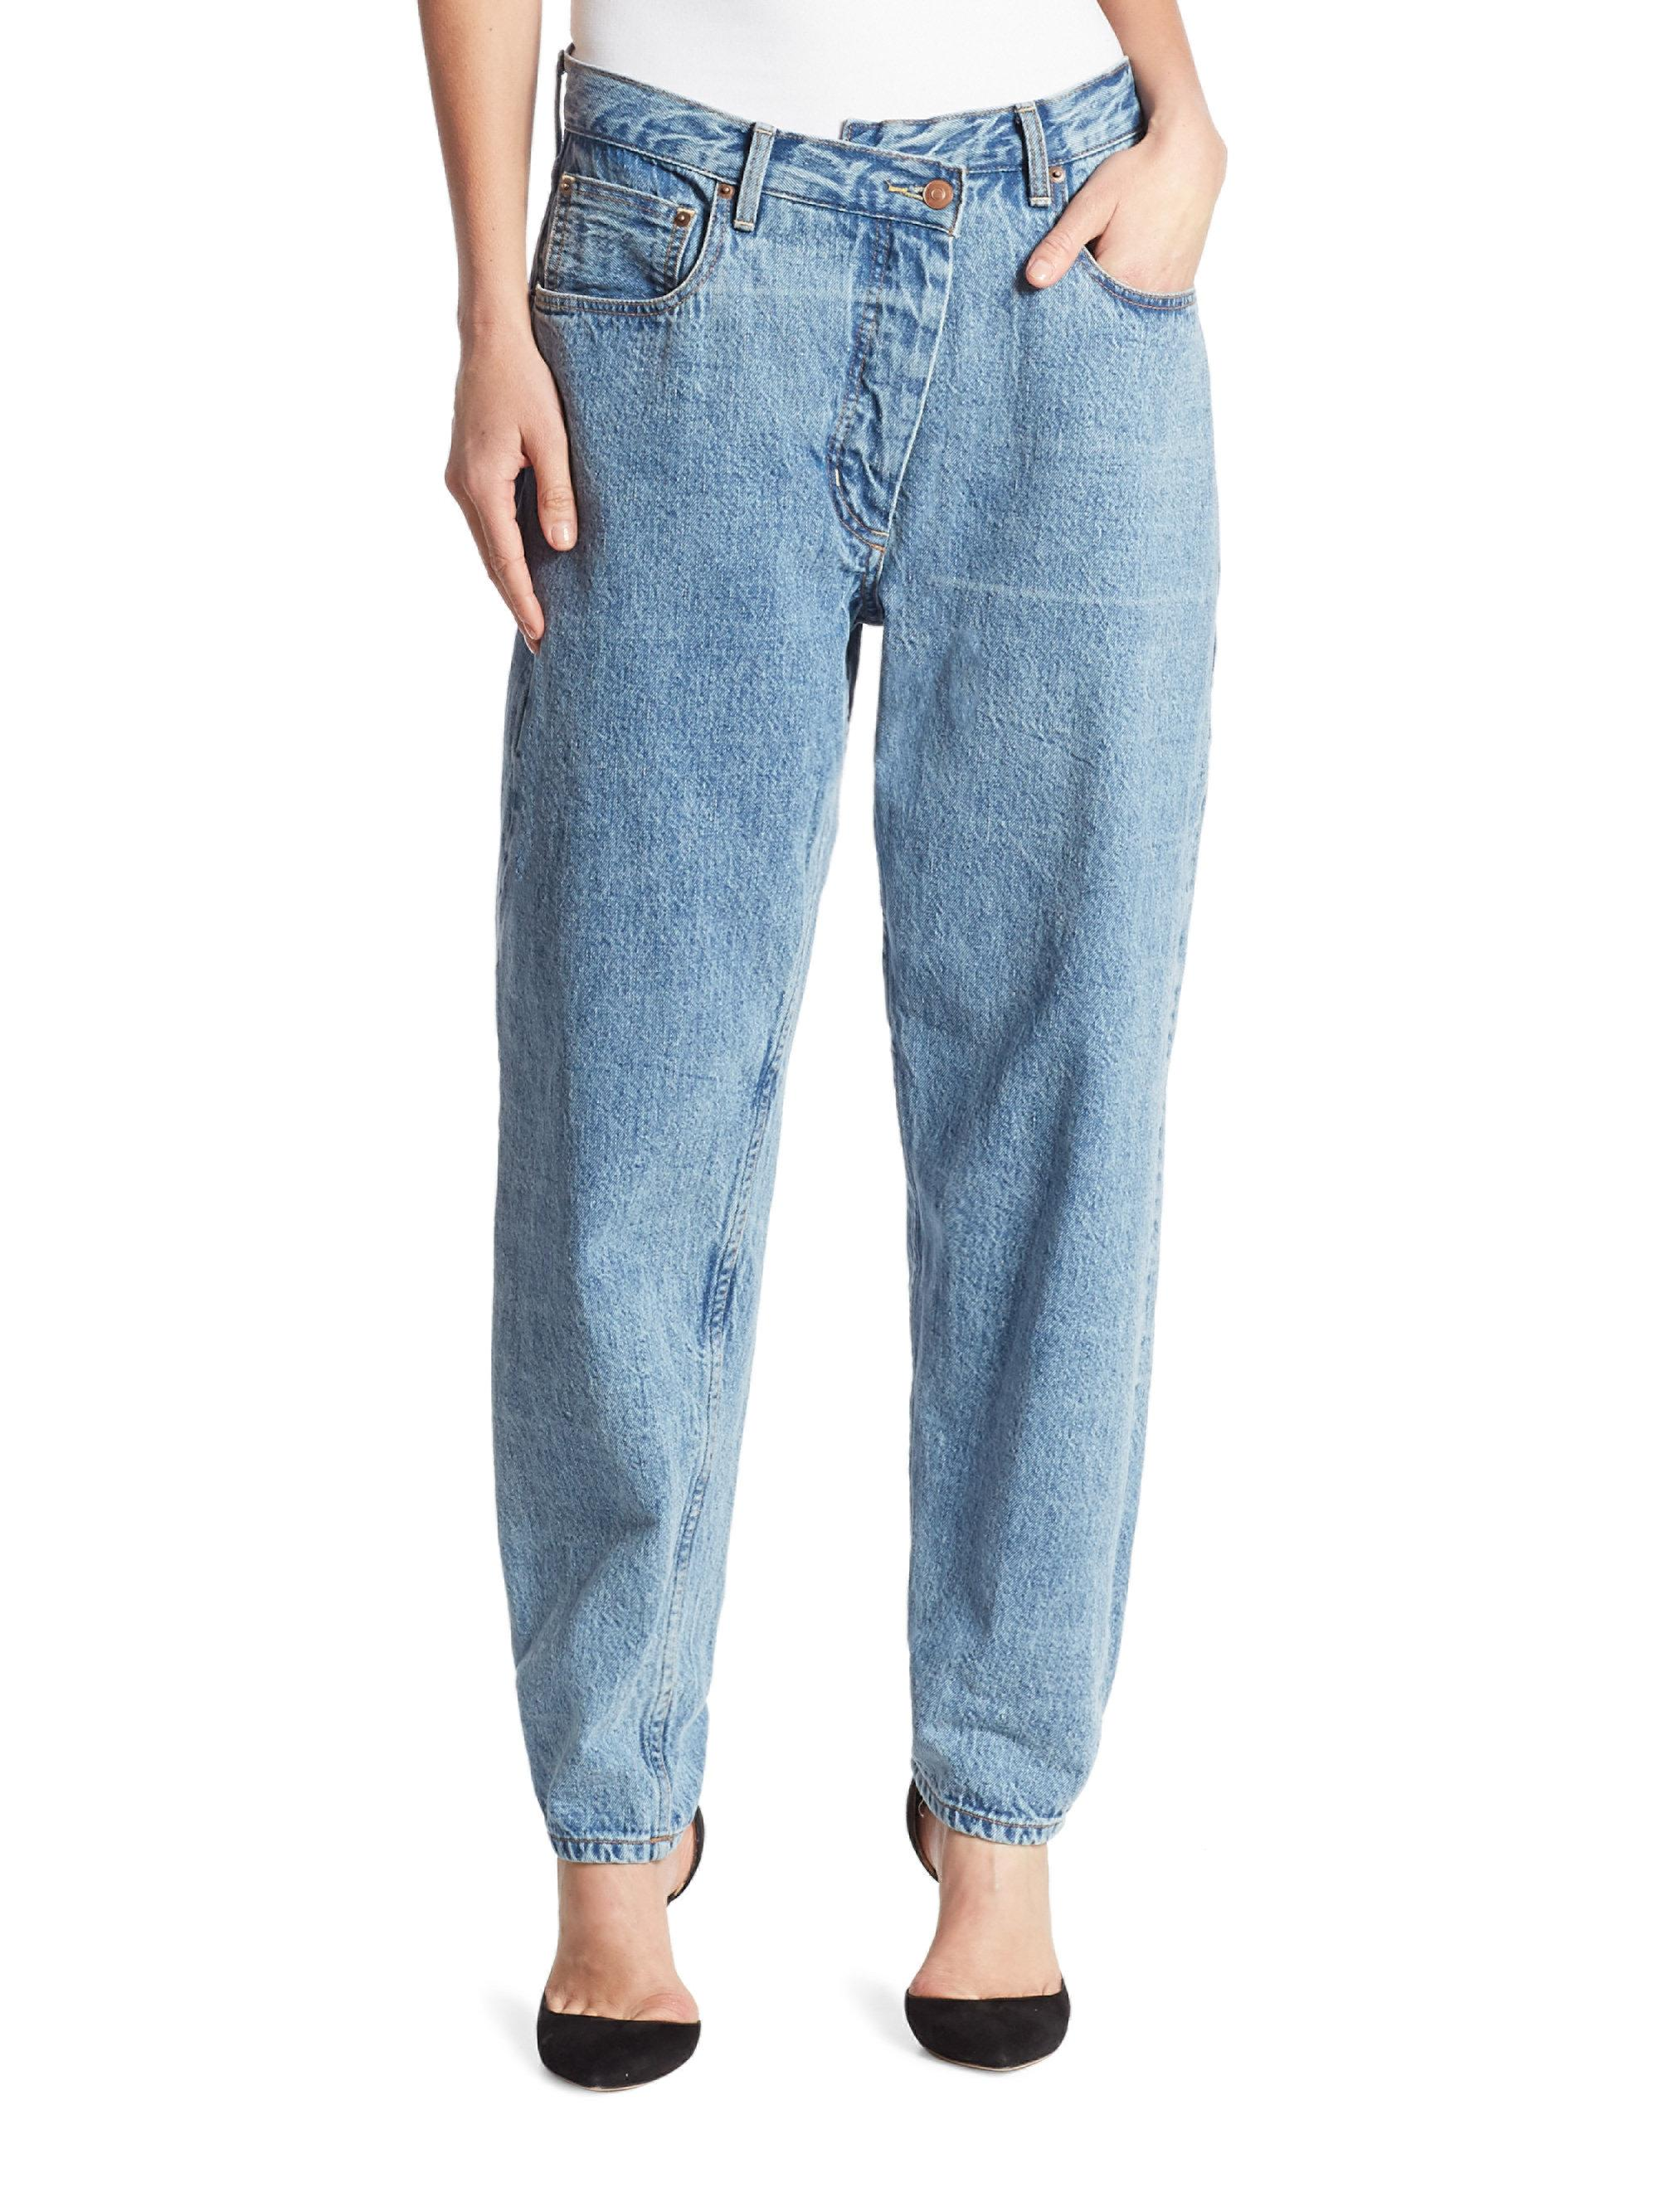 1dbe8b004ac Gallery. Previously sold at: Saks Fifth Avenue · Women's Boyfriend Jeans